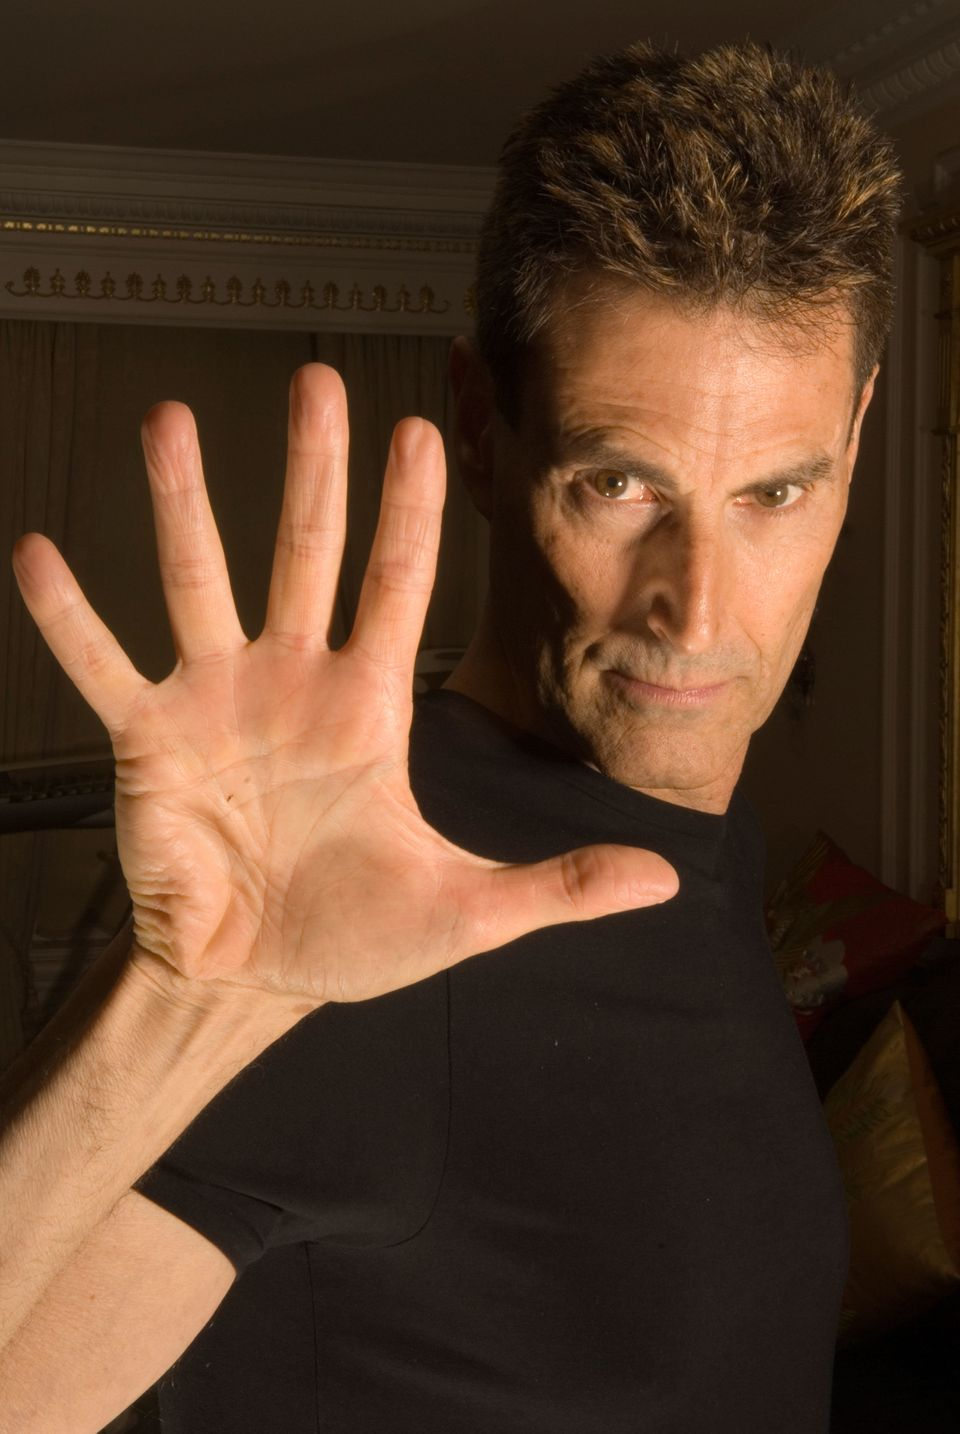 Uri Geller is known for being able to bend spoons, allegedly.